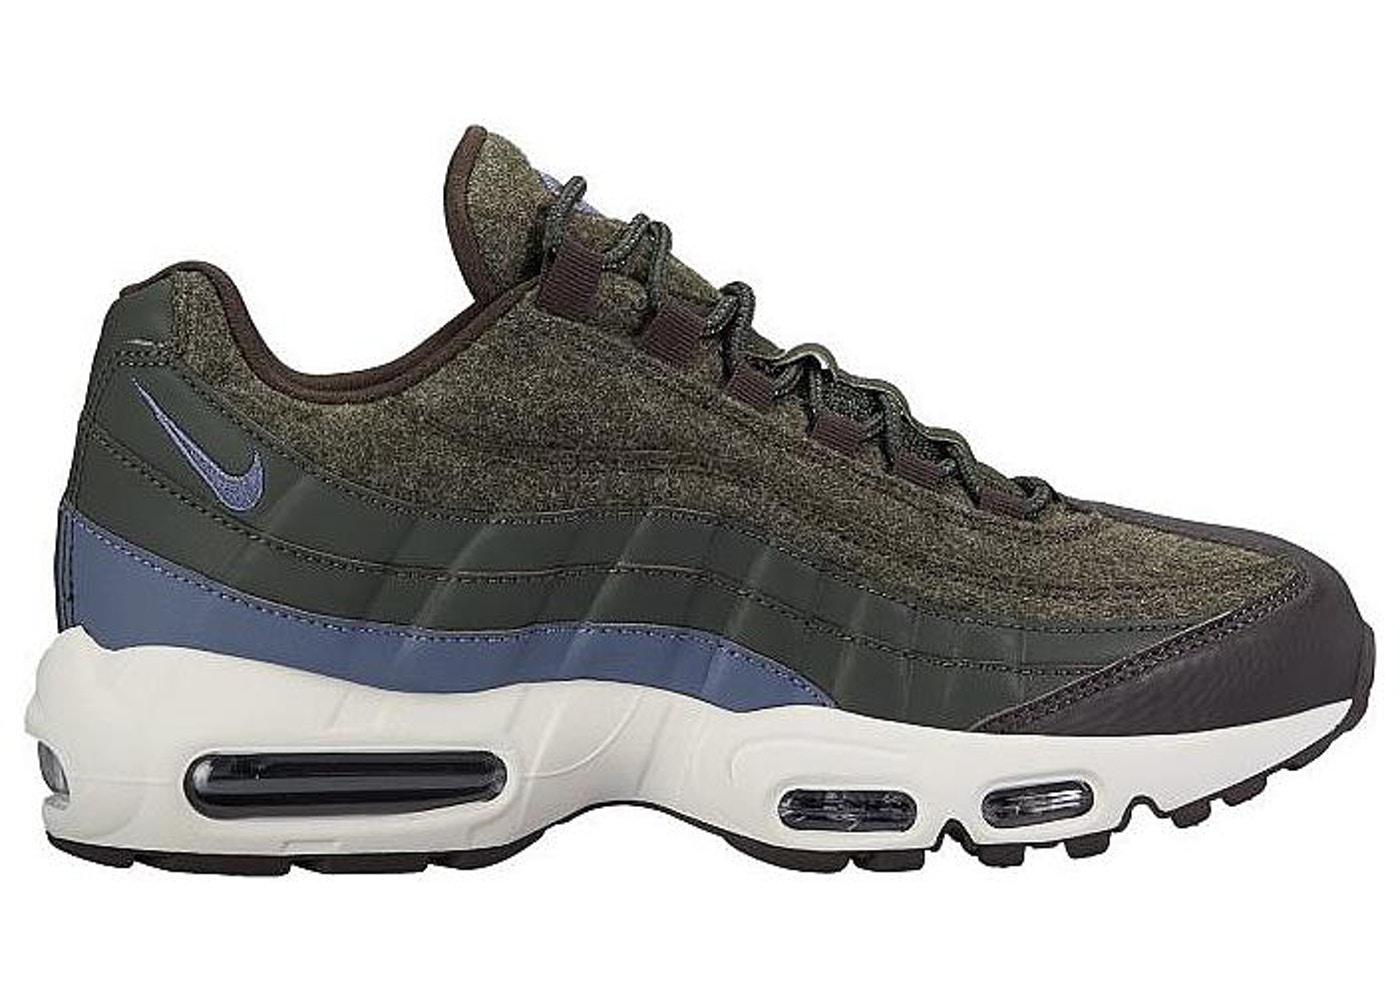 ナイキ メンズ エアマックス95 Nike Air Max 95 Wool Sequoia CARBON-VELVET BROWN